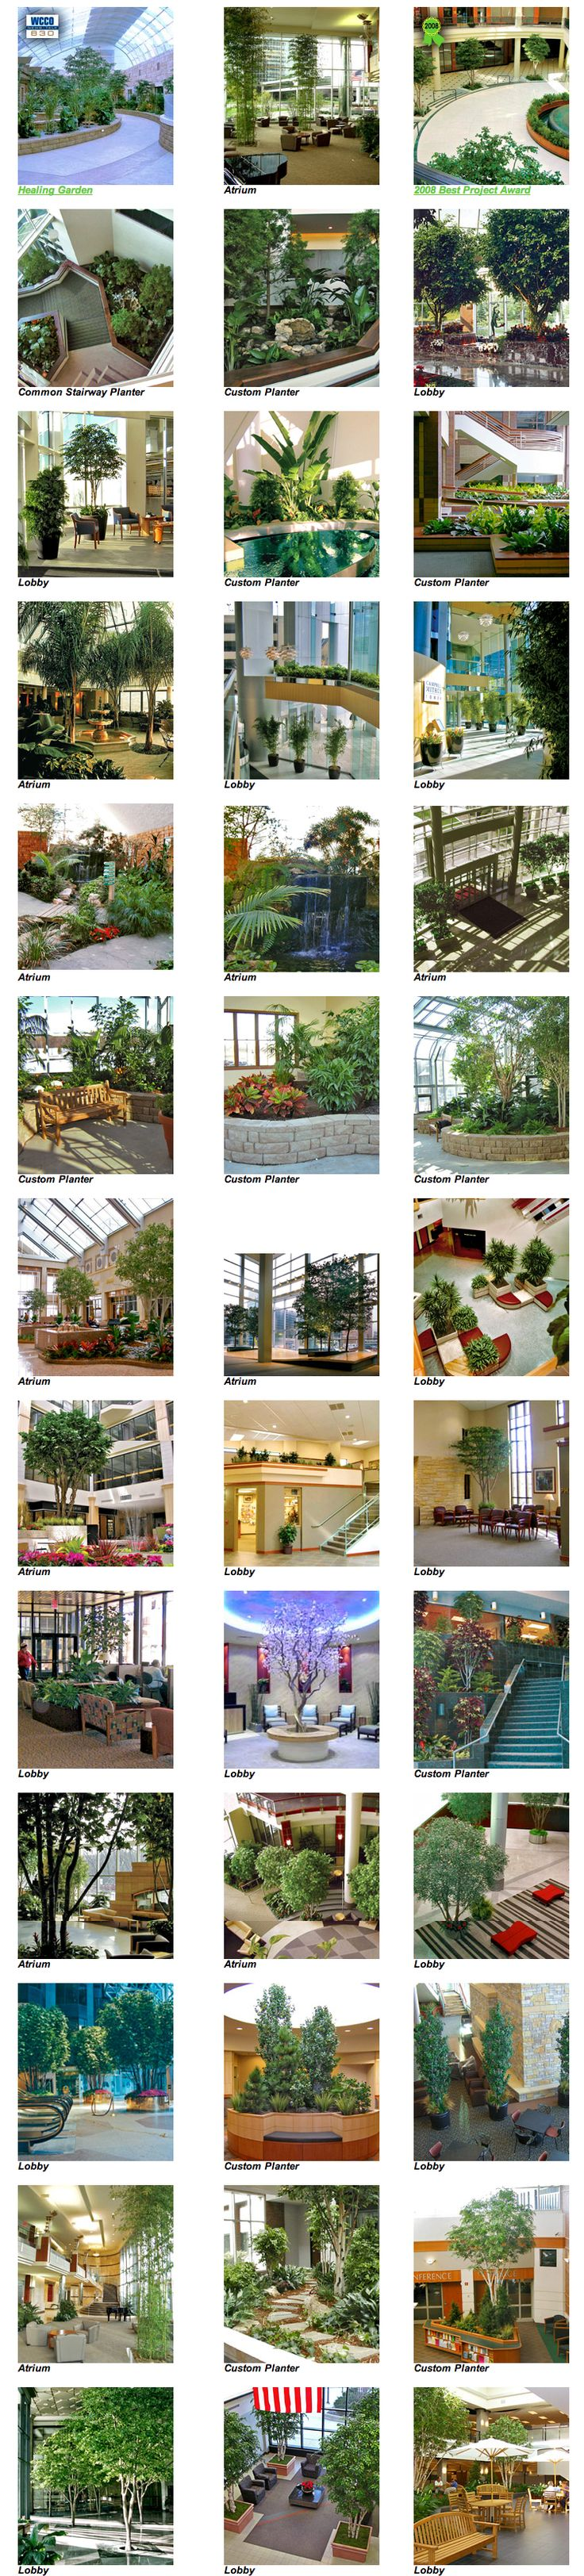 interior landscaping office. Interior Landscaping- Atriums, Office Lobbies And Custom Planters By Plantscape Inc. Landscaping P